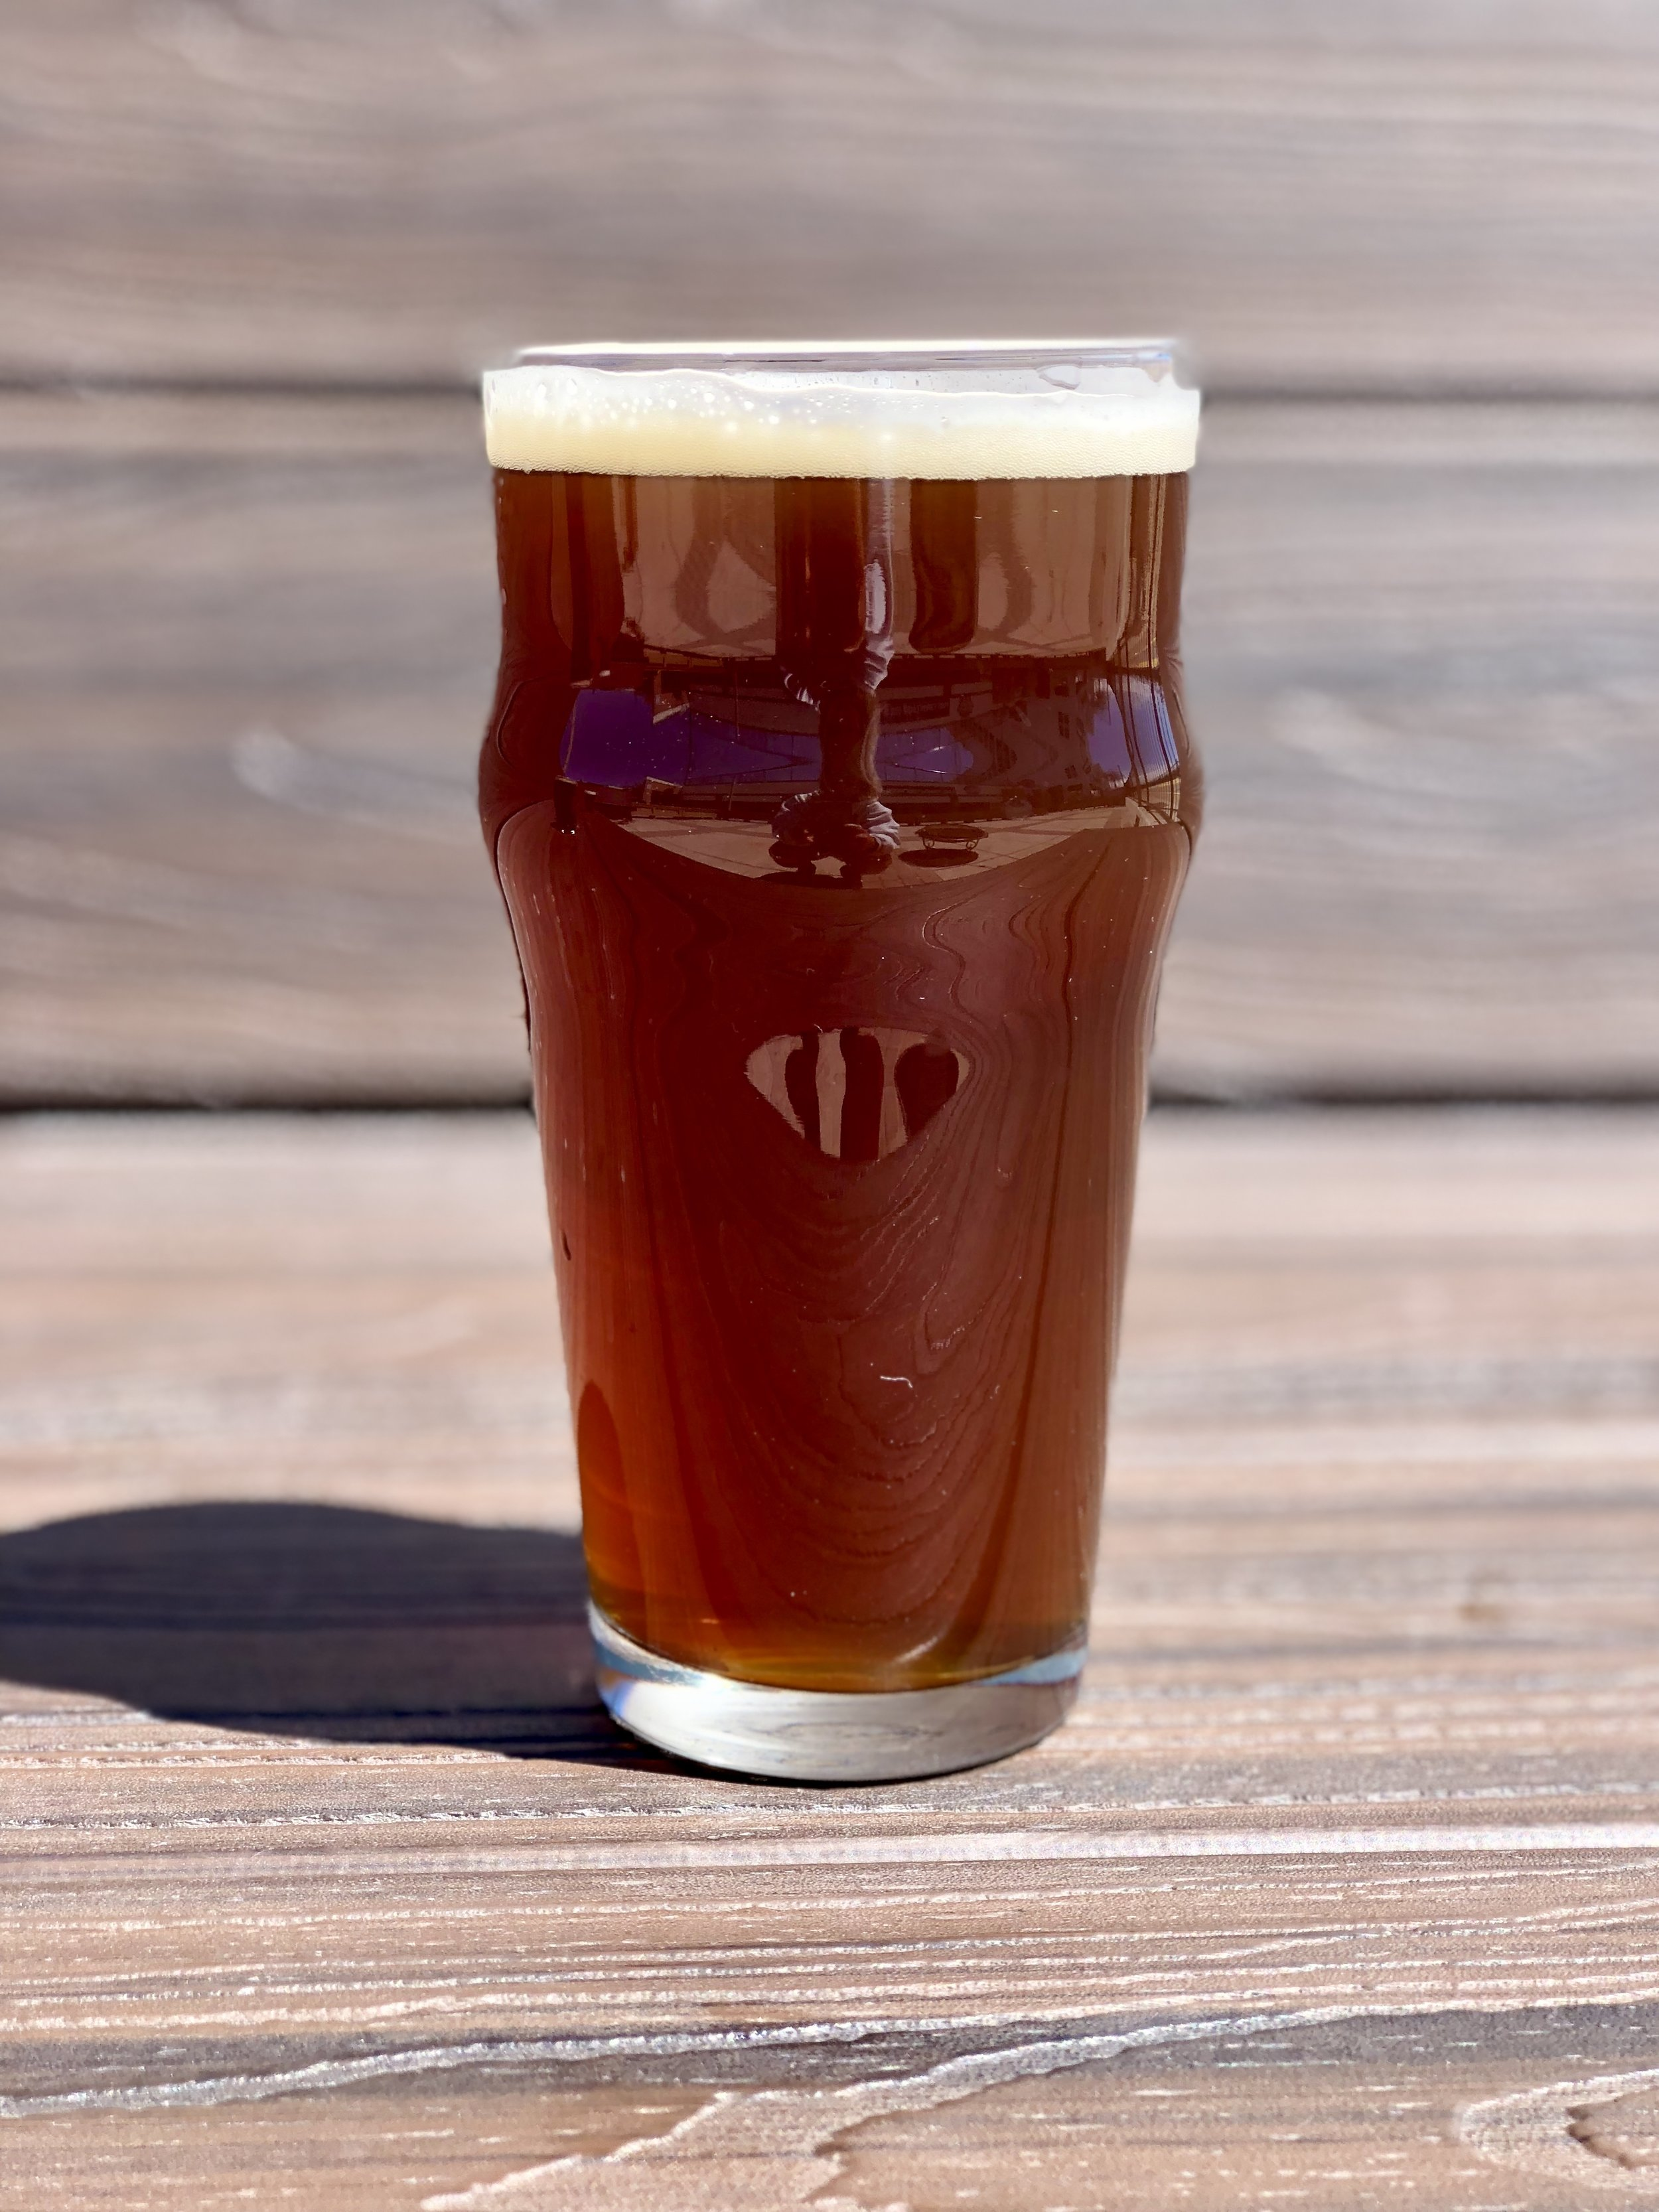 ROUND LAKE RED: 5.1% AVB - 27 IBU   Our version of an Irish Red Ale with an American Twist. Roasted, caramel flavors with not a huge body that keeps her balanced like they are supposed to be.